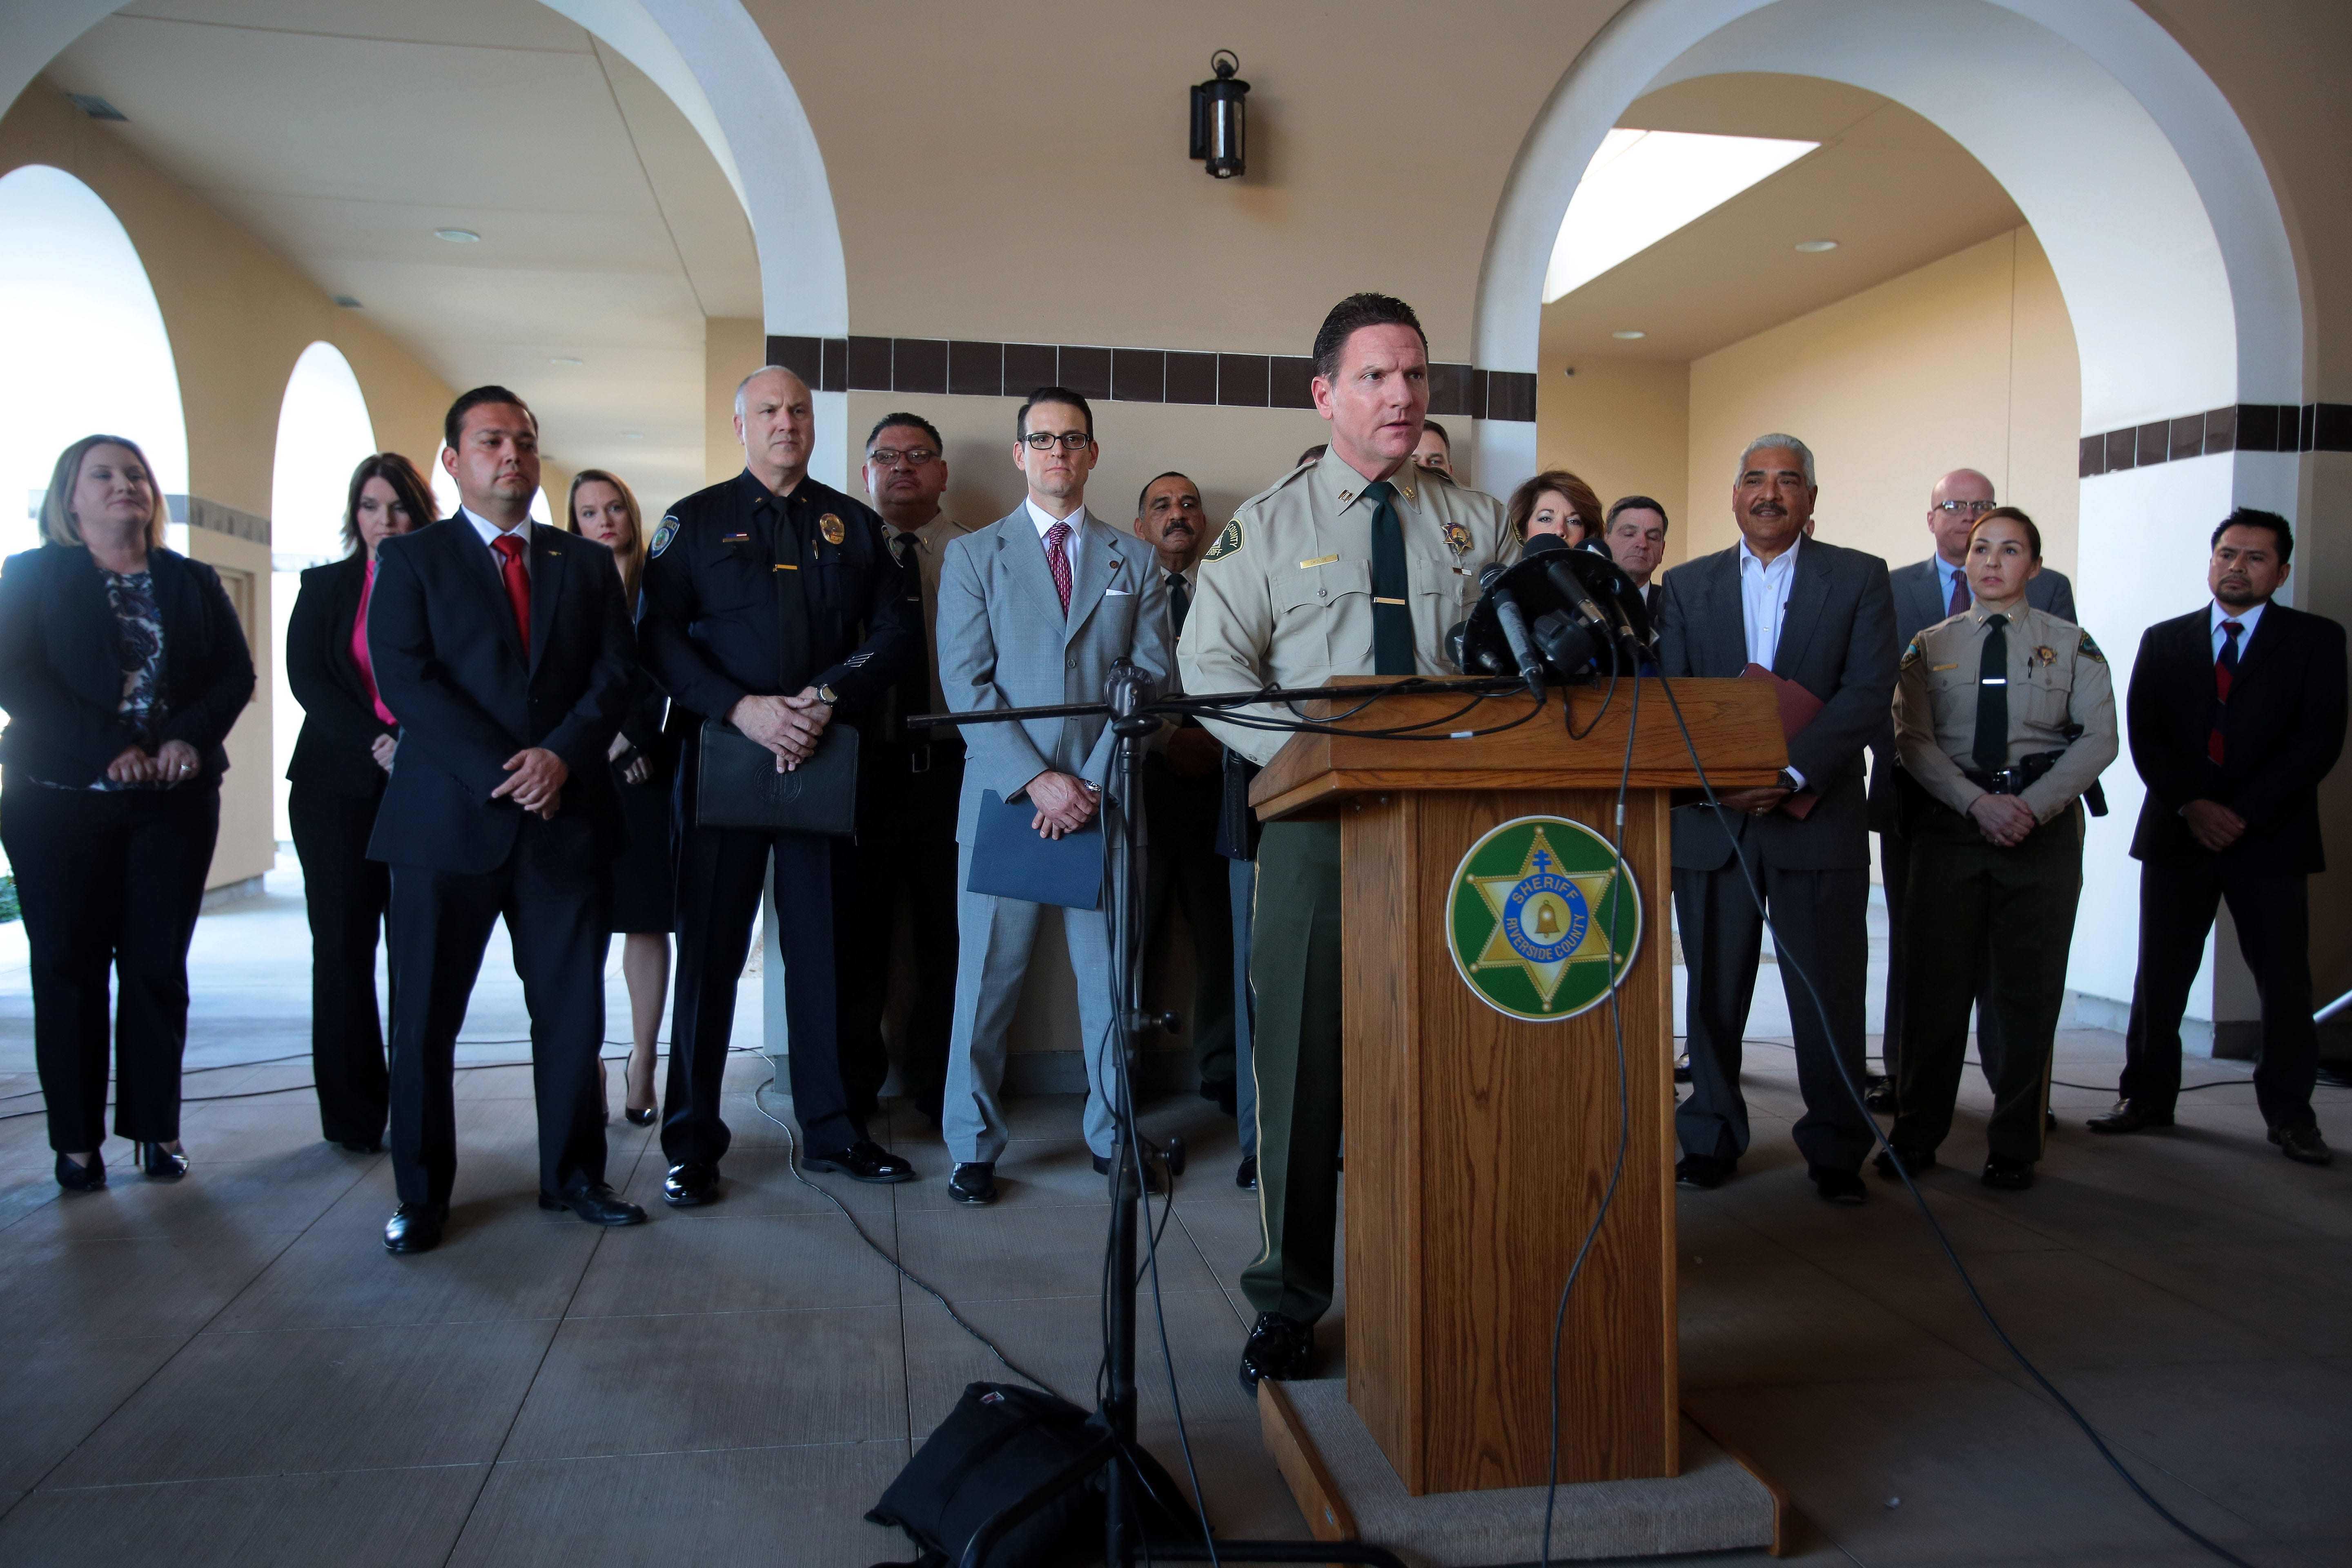 Riverside County Sheriff's Capt. Andrew Shouse speaks to the media after a multi-agency gang raid in Coachella on Feb. 25, 2016. Photo taken at the Riverside County Sheriff's Station in Thermal.